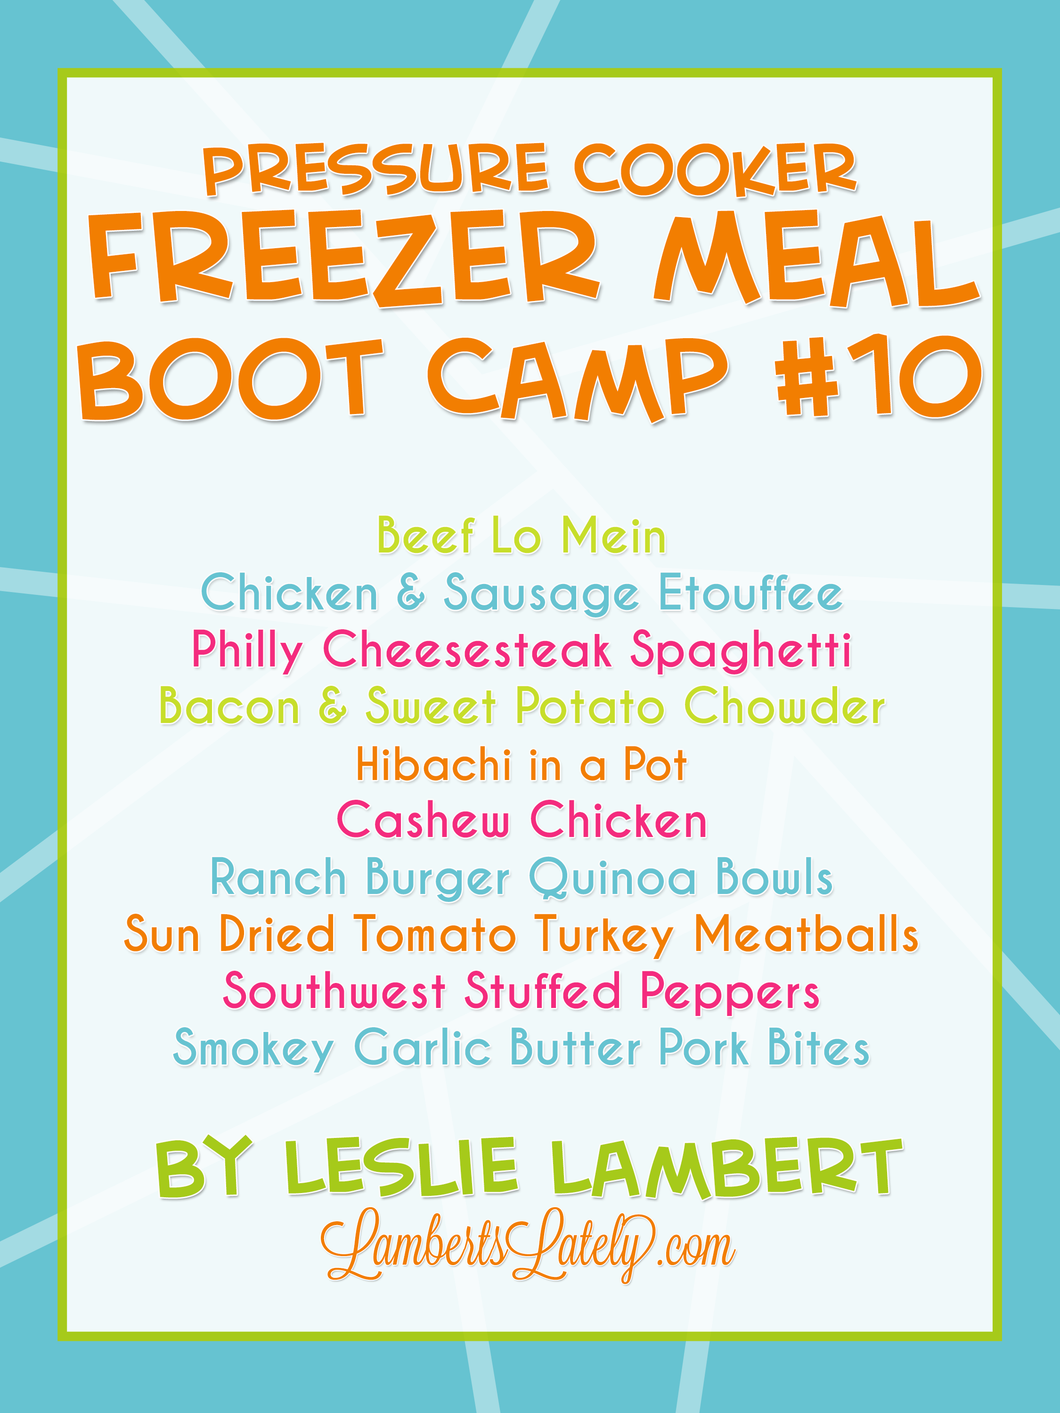 Pressure Cooker Freezer Meal Boot Camp #10